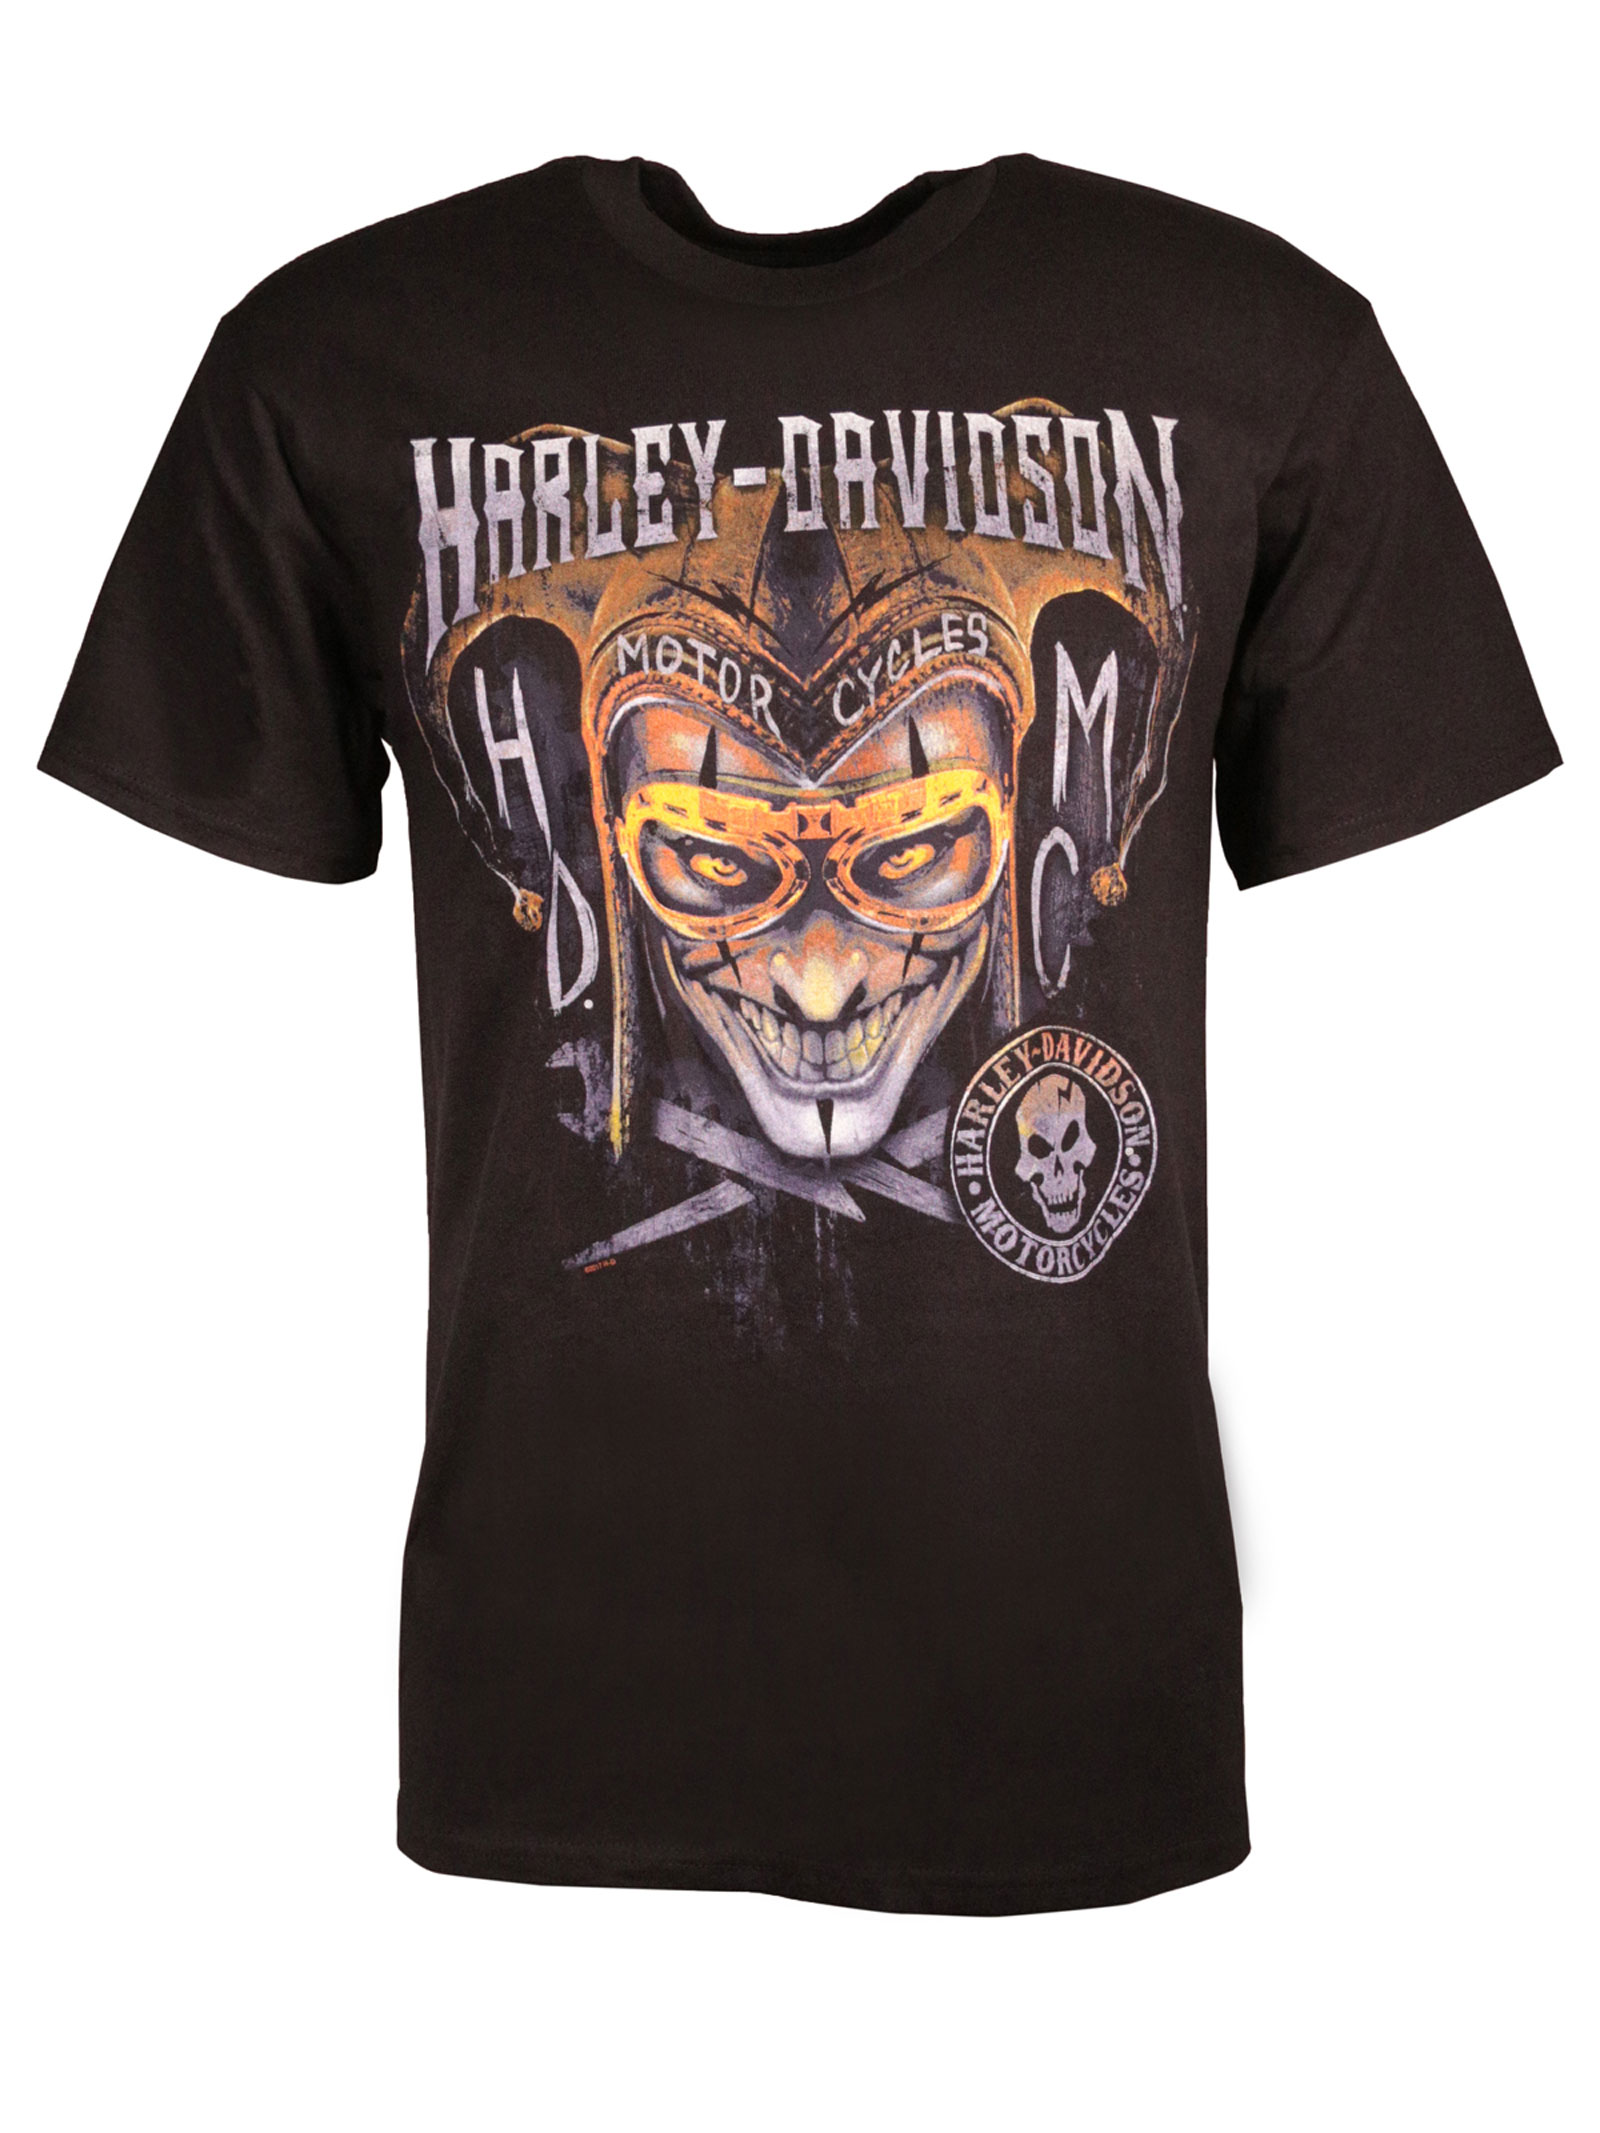 harley davidson t shirt clown around at thunderbike shop. Black Bedroom Furniture Sets. Home Design Ideas